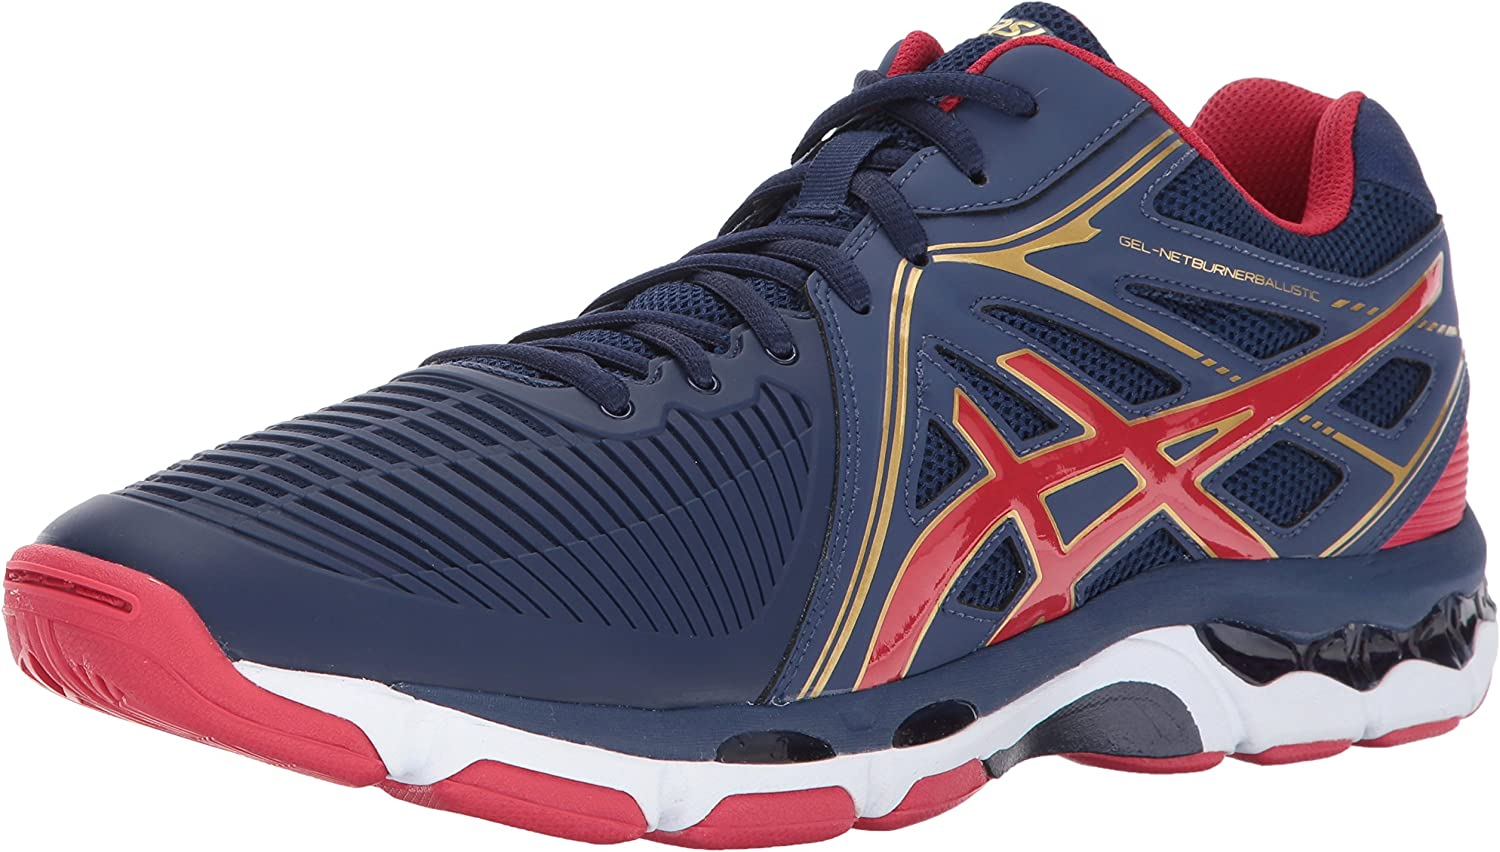 OFFicial ASICS Men's Gel-Netburner Ballistic Volleyball Shoe Animer and price revision MT